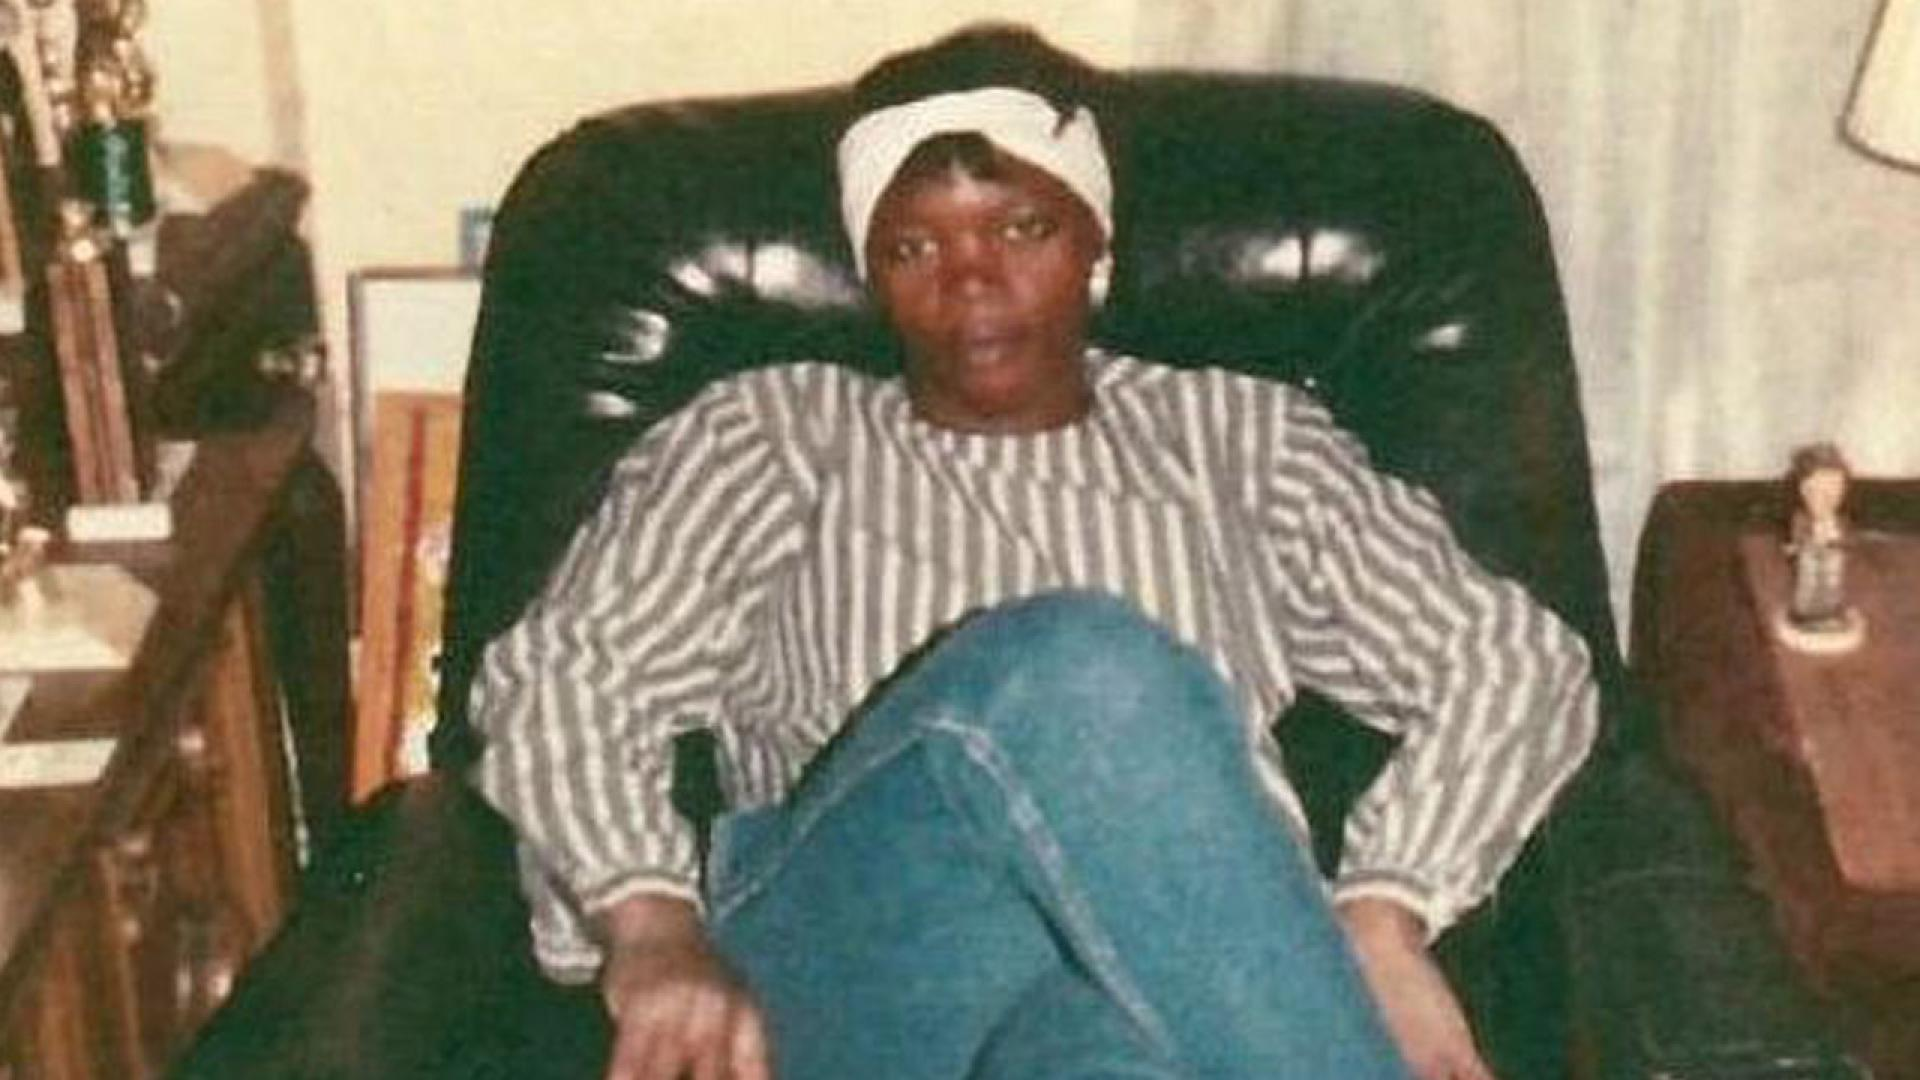 Dora Brimage was raped and murdered in 1987.